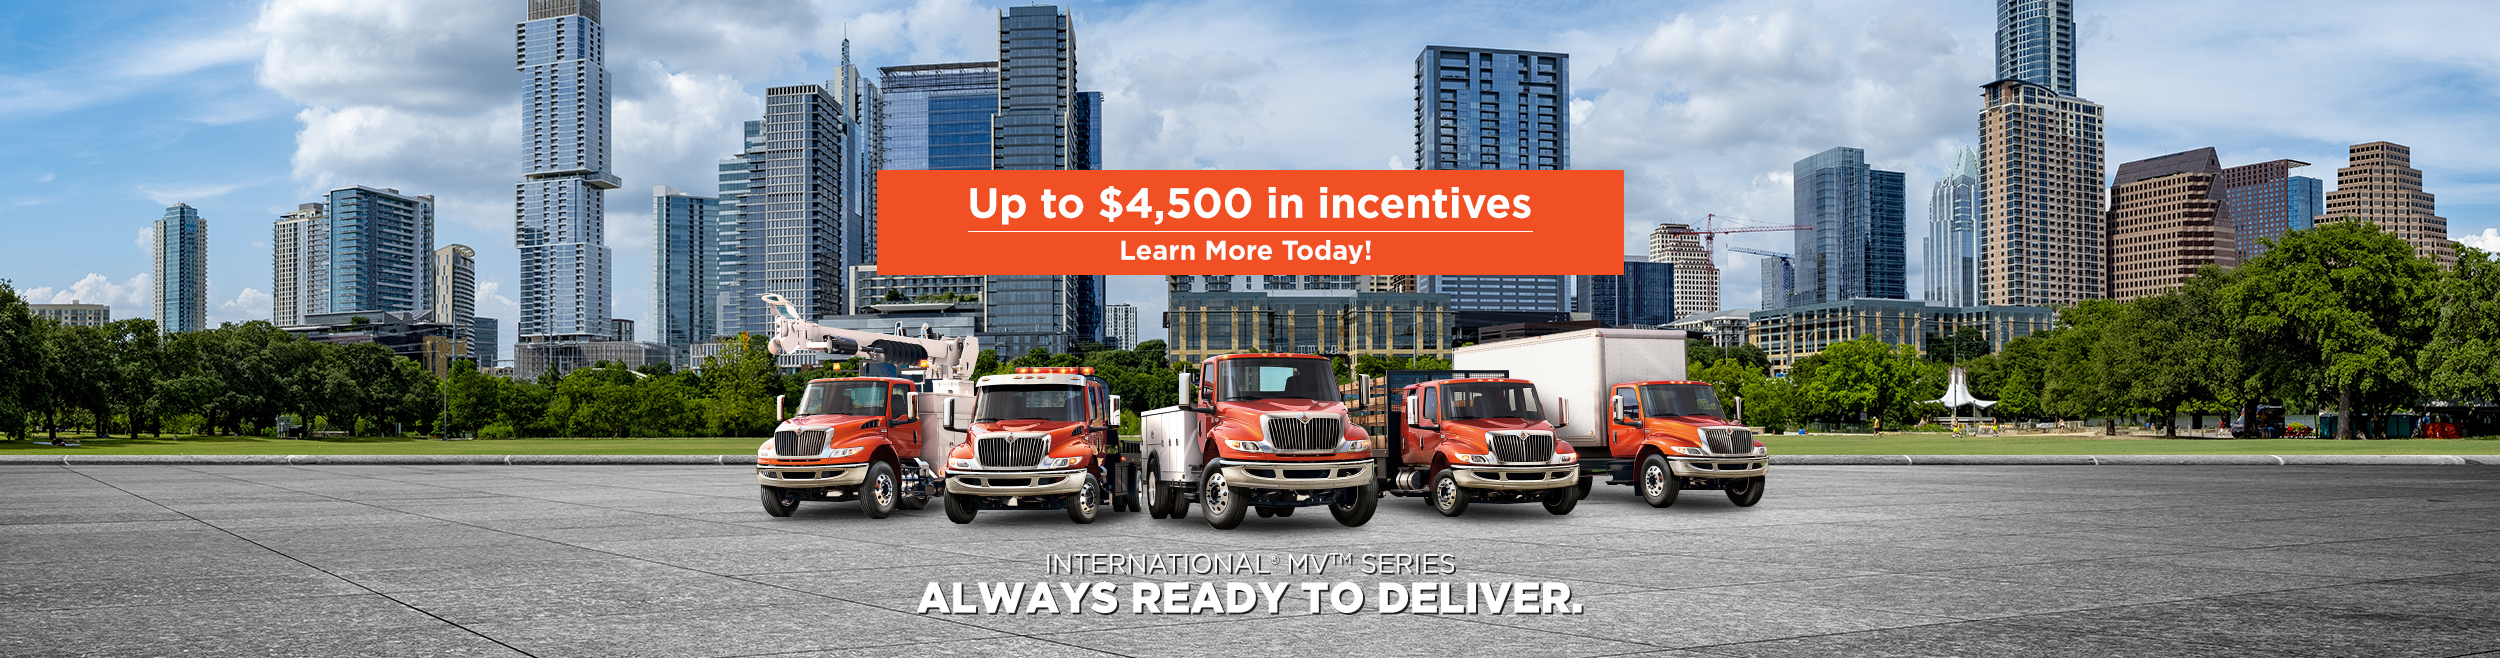 Up to $4,500 in incentives